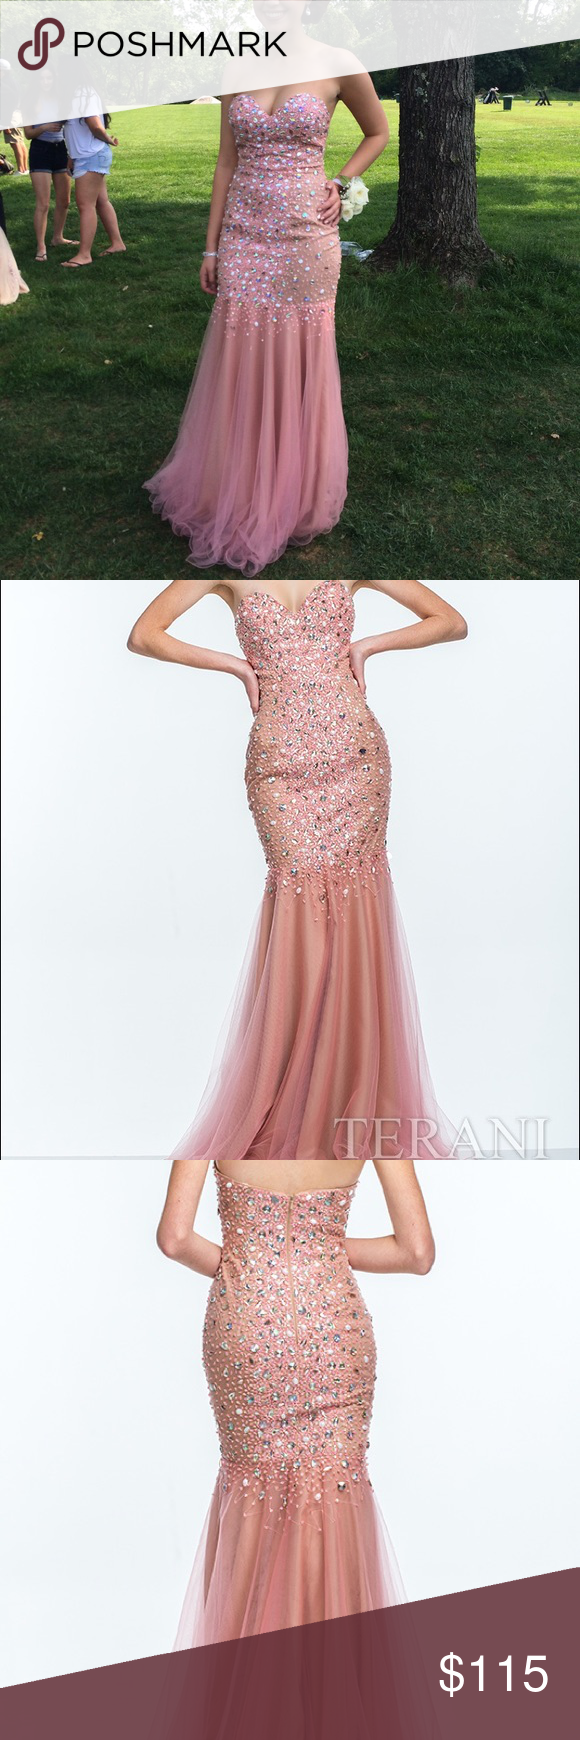 Terani prom gown only worn once perfect condition sweetheart